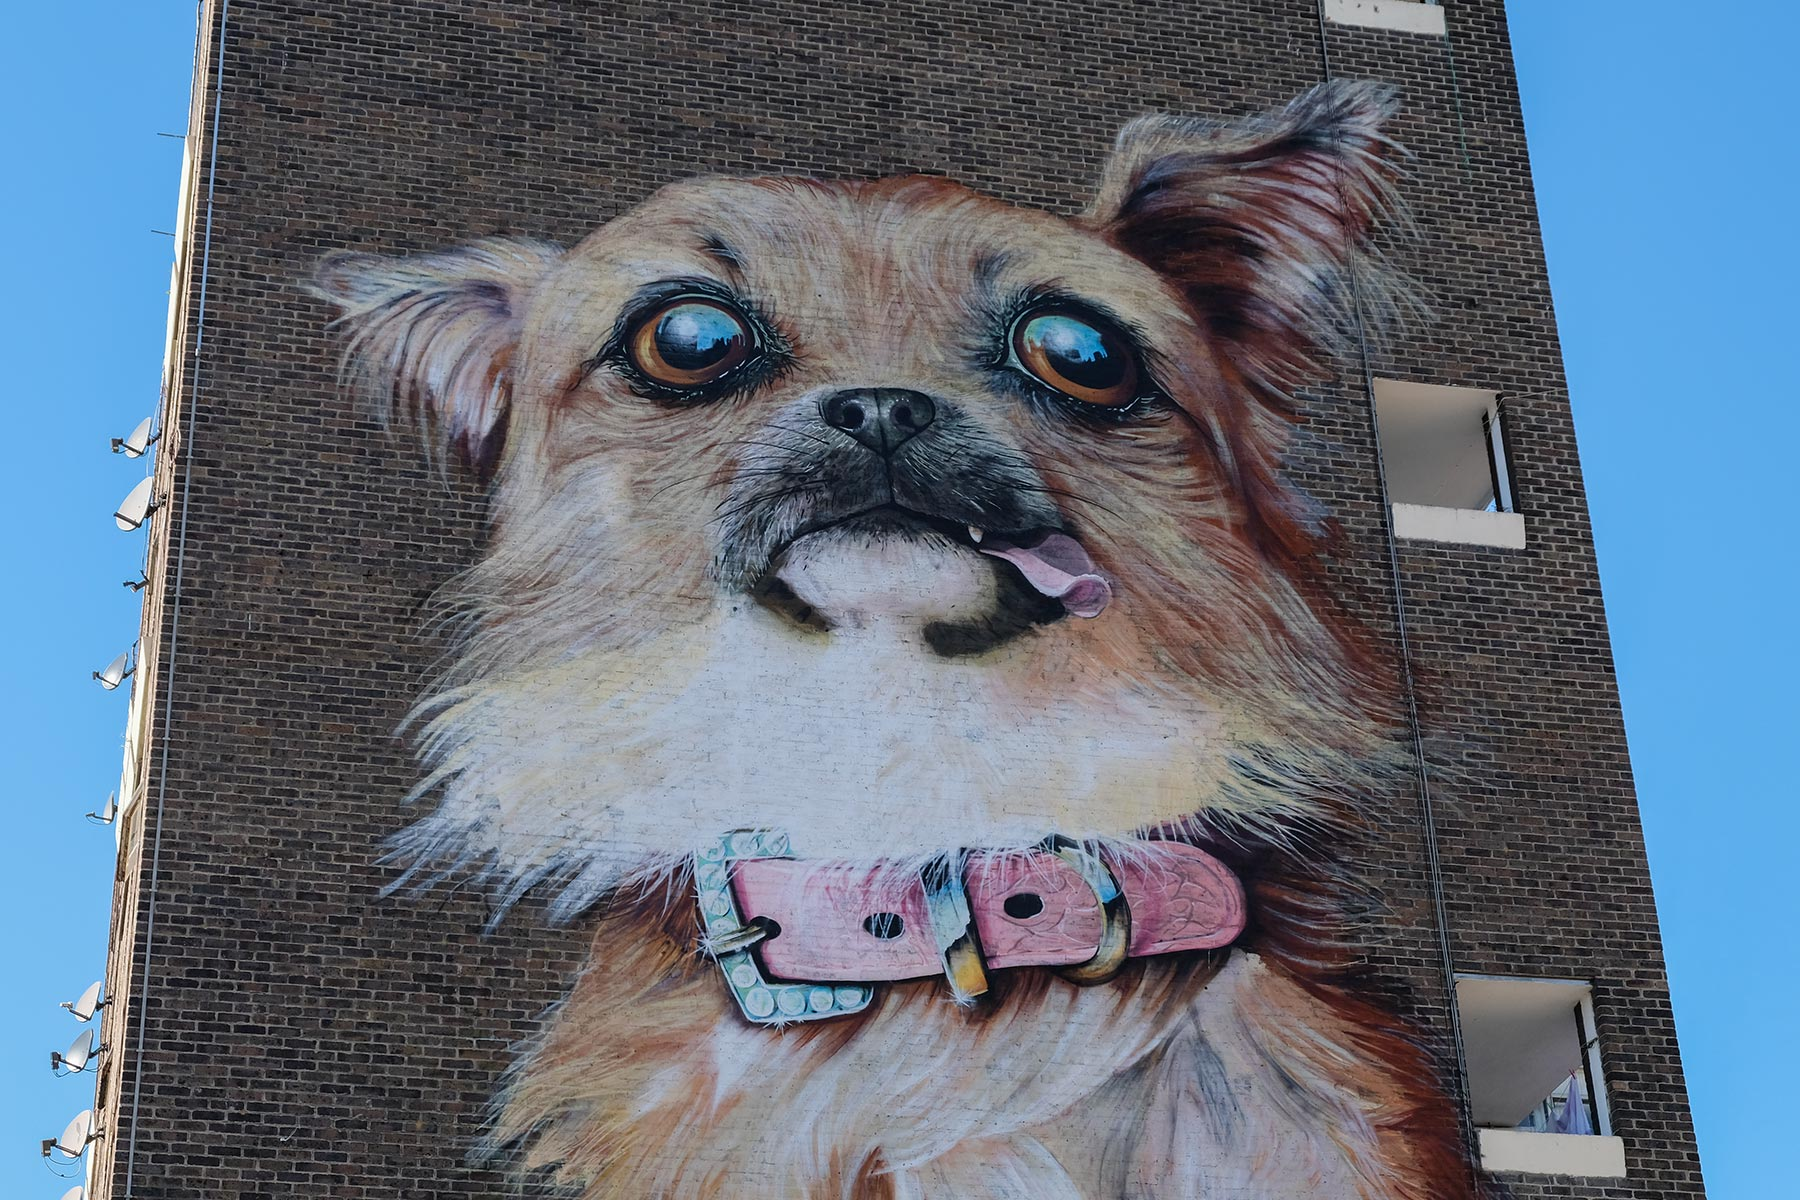 Street Art London - Boe & Irony 'Chihuahua', Chrisp Street at the corner of East India Dock Road, Poplar